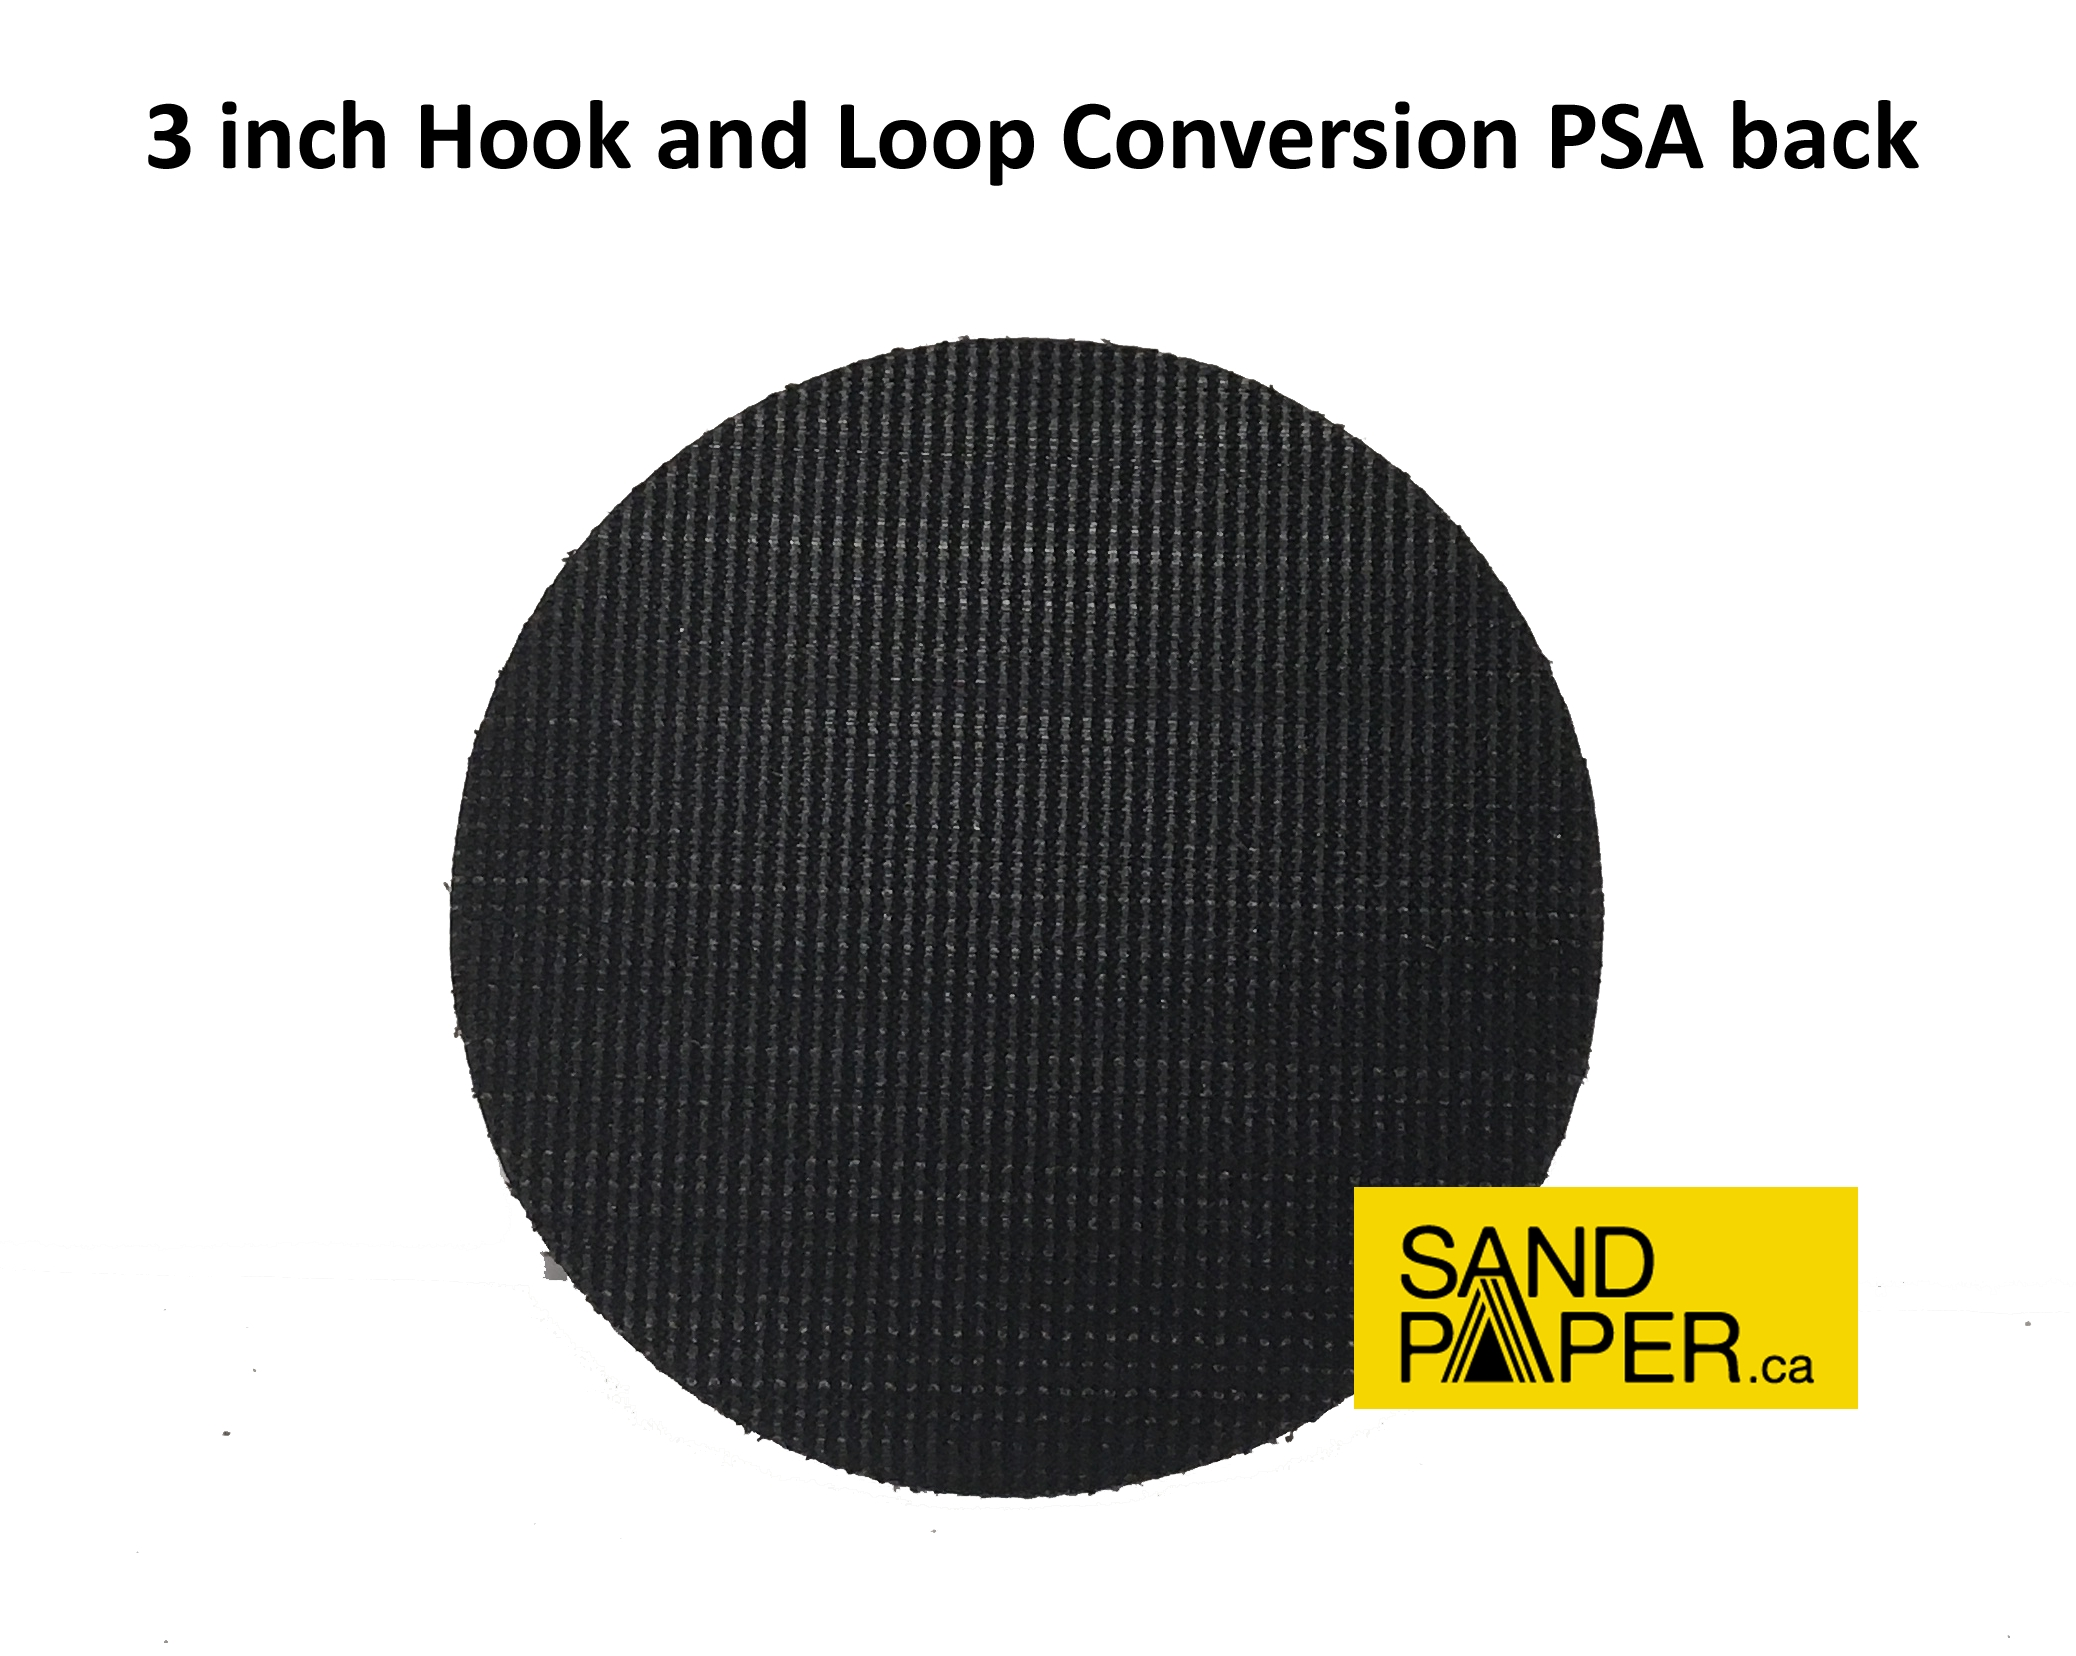 "Hook And Loop Sandpaper >> Hook and Loop Conversions :: 3"" - Hook & Loop Conversion -PSA back"